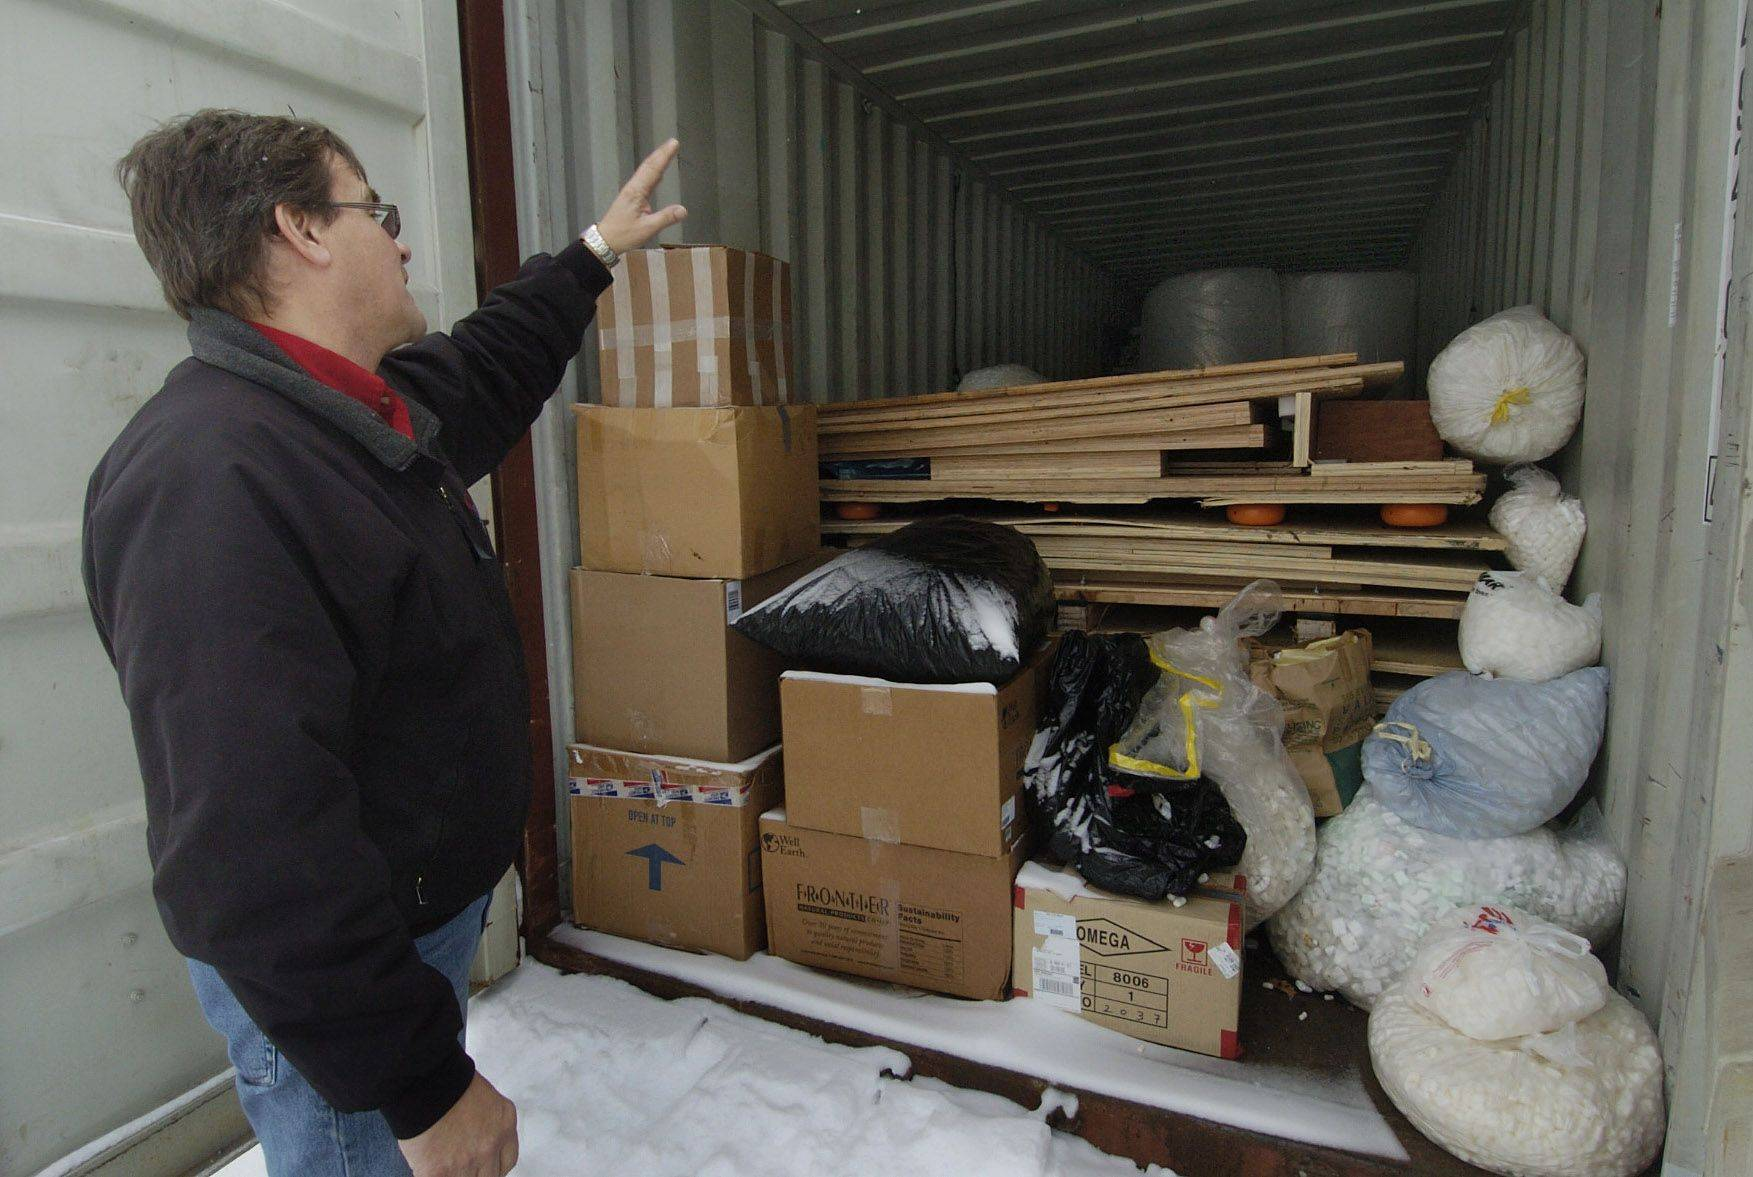 Ken Santowski looks inside a storage container where he keeps bags of foam peanuts that people dropped off for recycling.